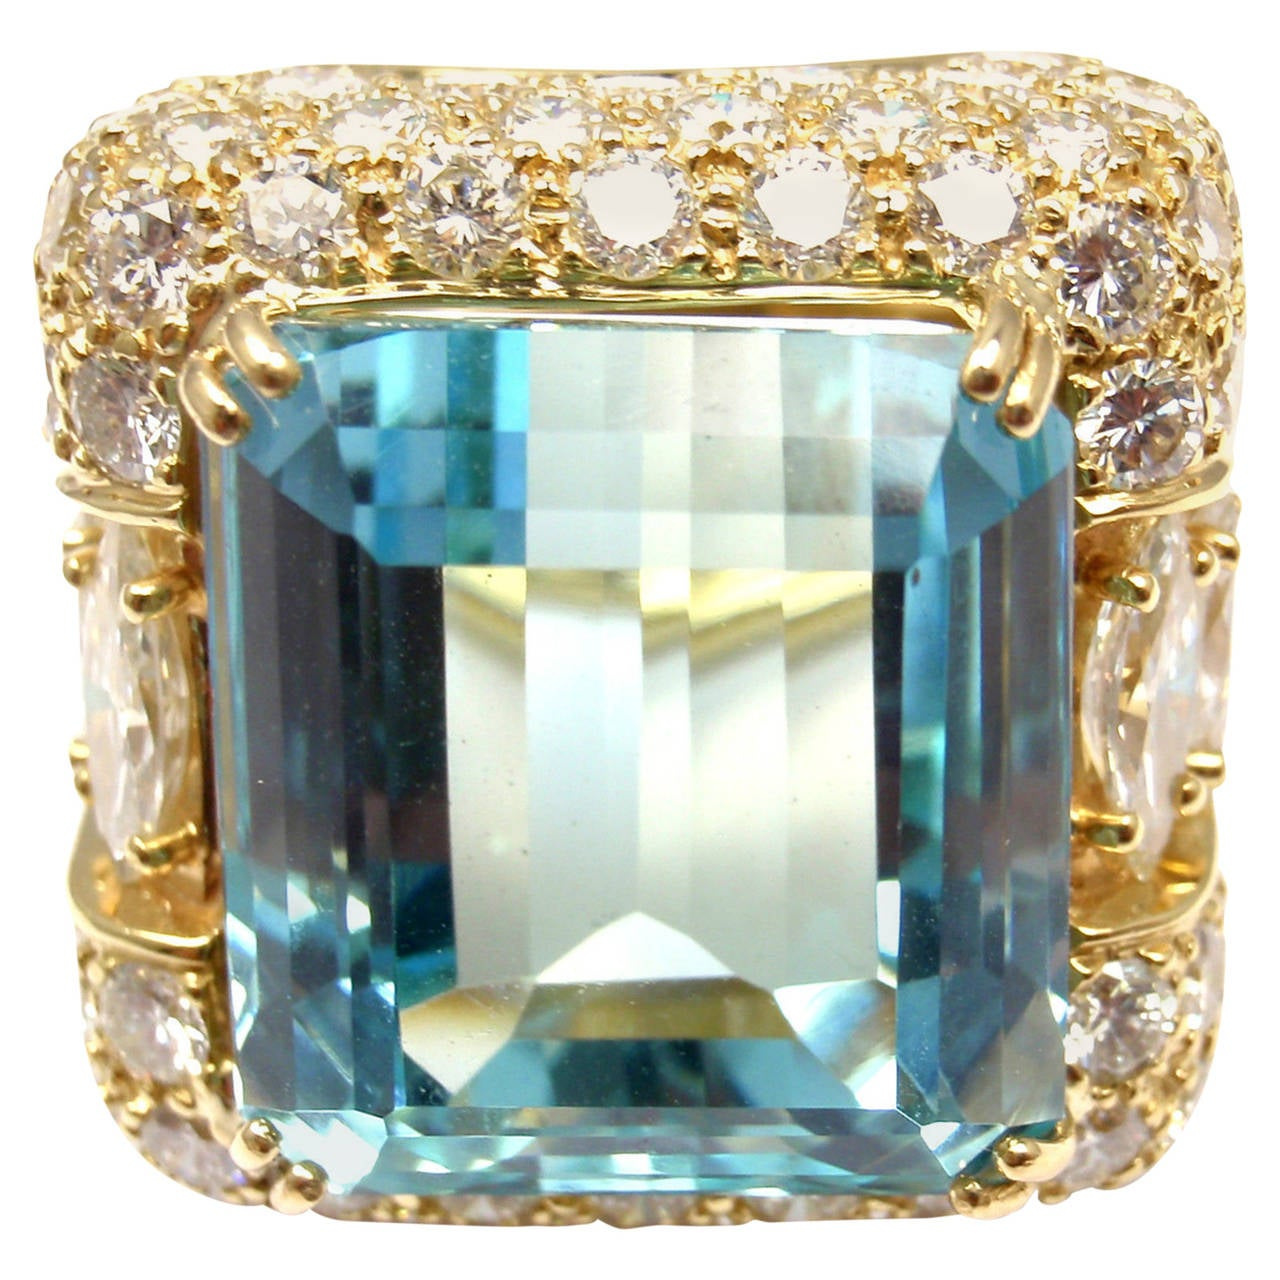 Hammerman Brothers Large 23.70 Carat Aquamarine Diamond Gold Ring